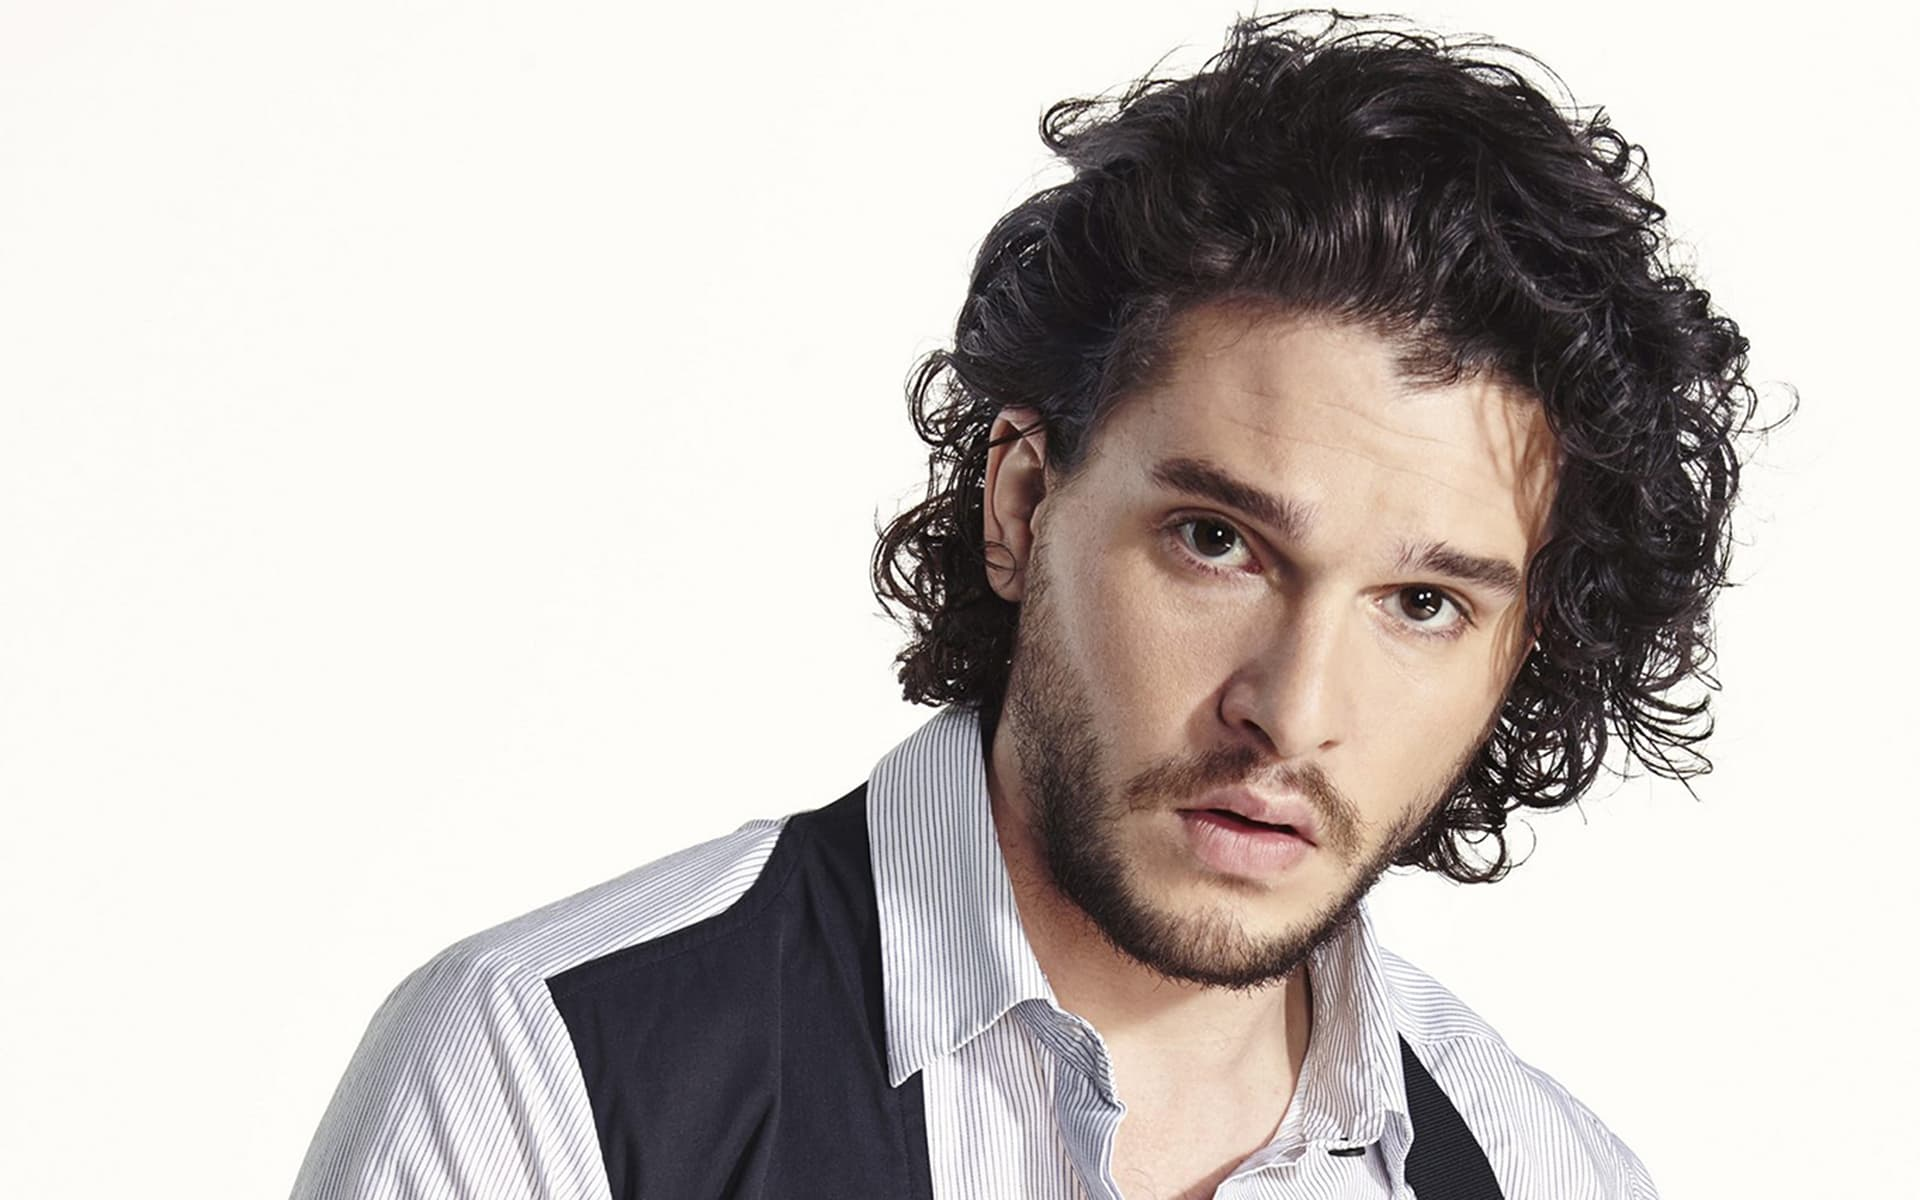 Kit Harington Bing Images